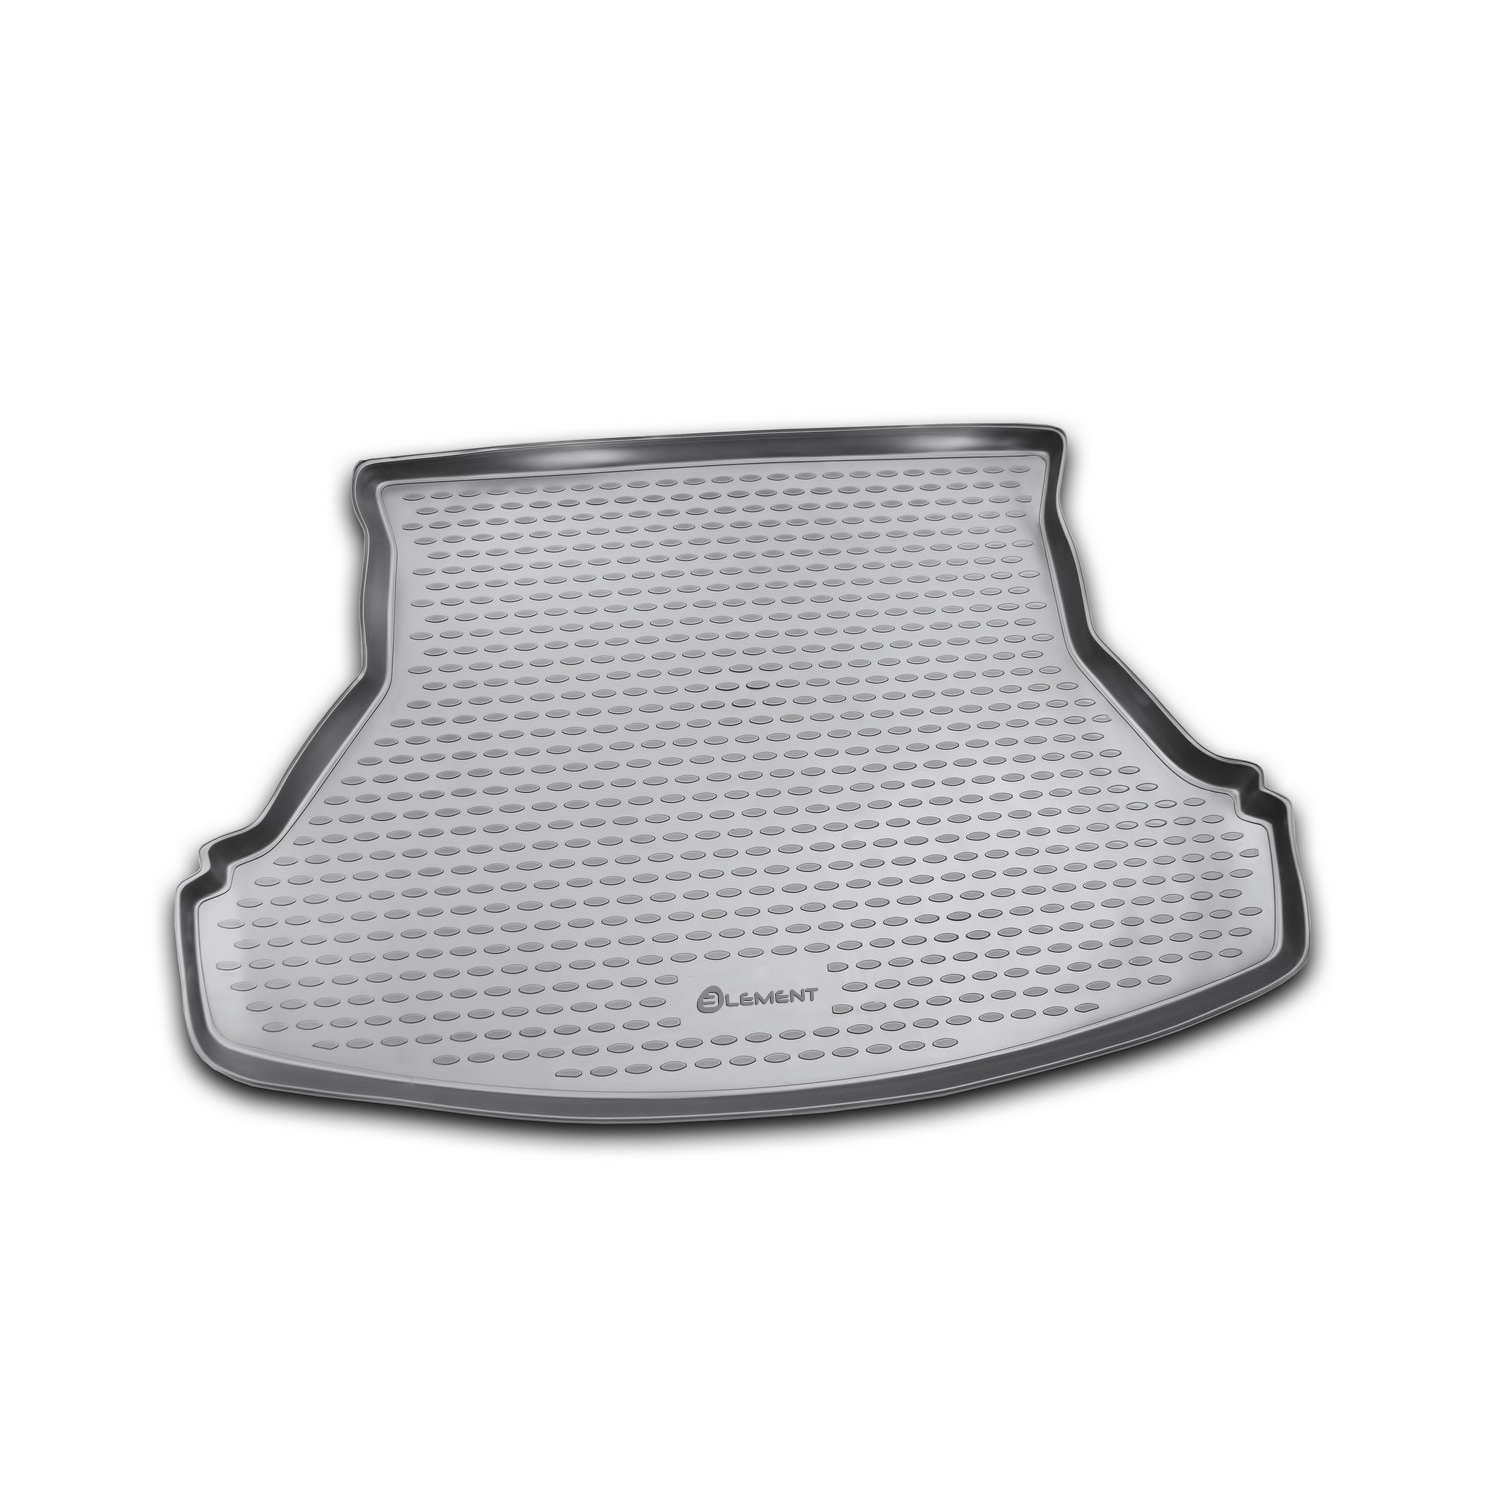 Trunk Mat For LADA Kalina 1118-2004, ETS. NLC.52.04.B10